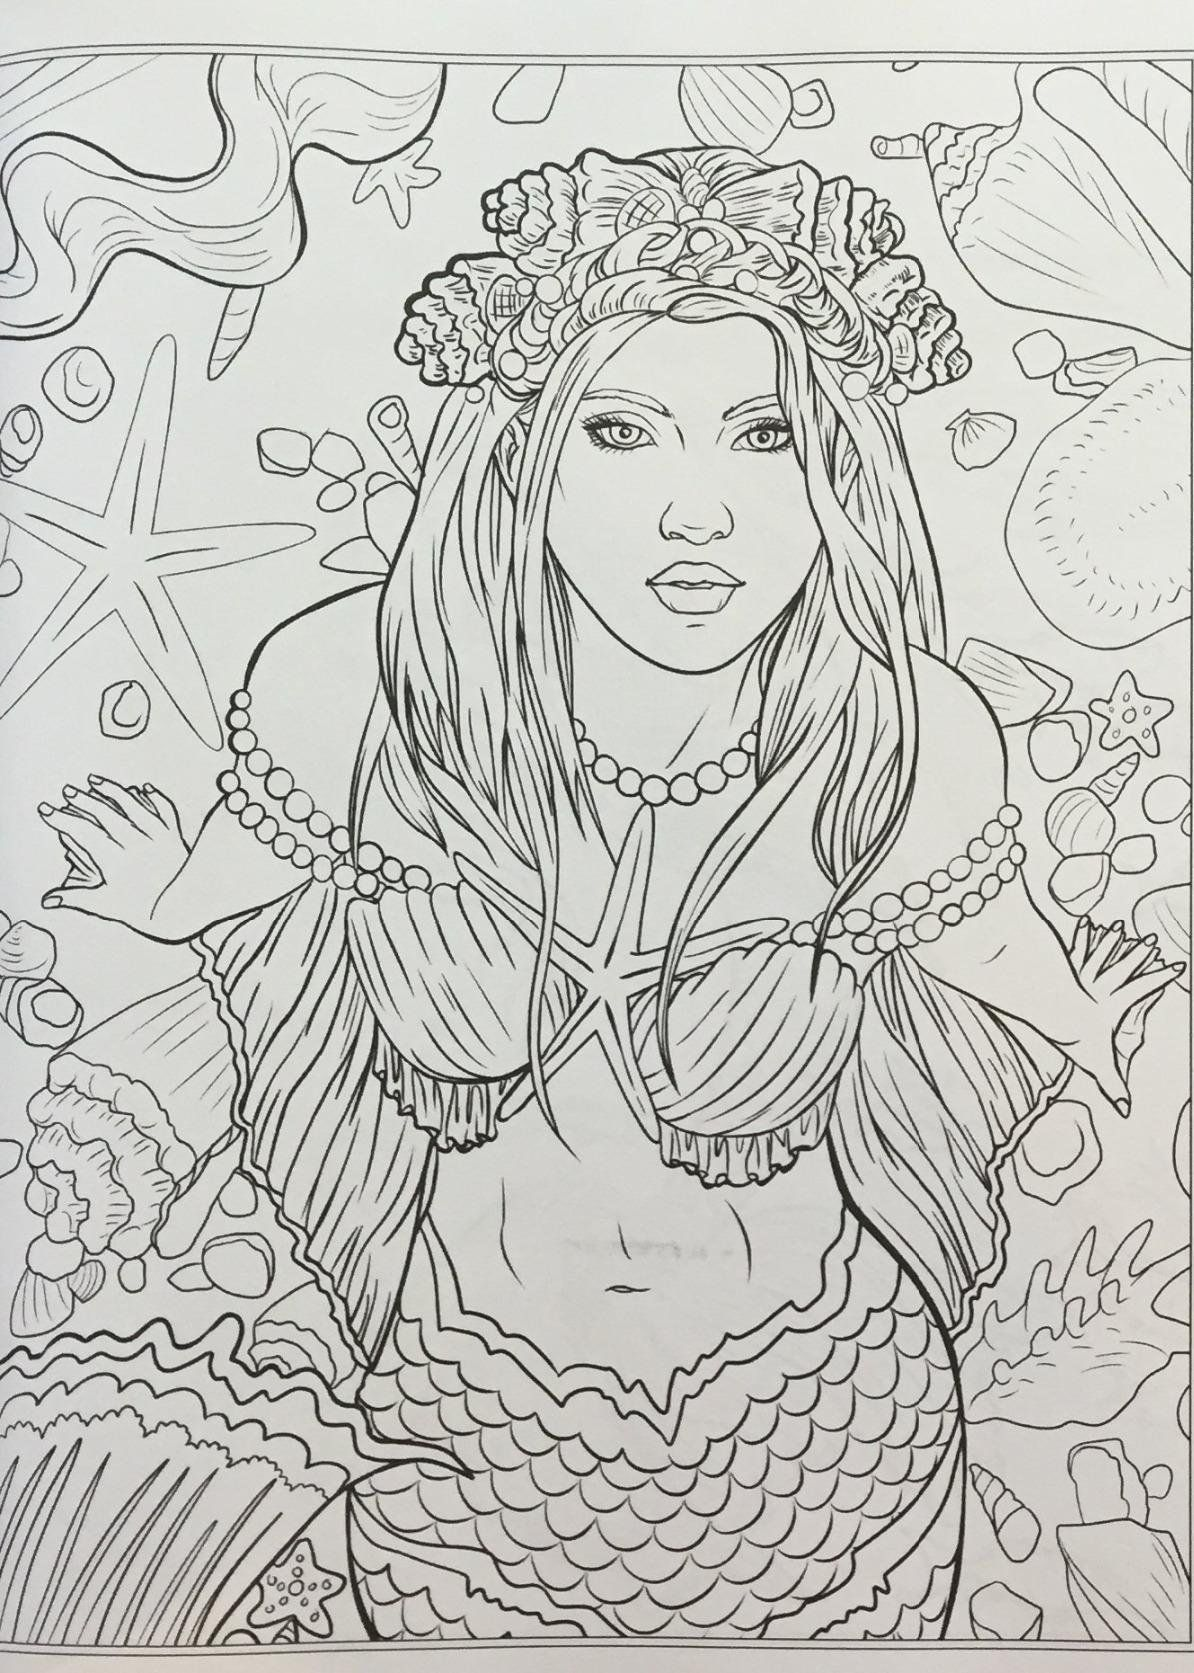 Mythical Mermaids - Fantasy Adult Coloring Book (Fantasy Coloring by ...